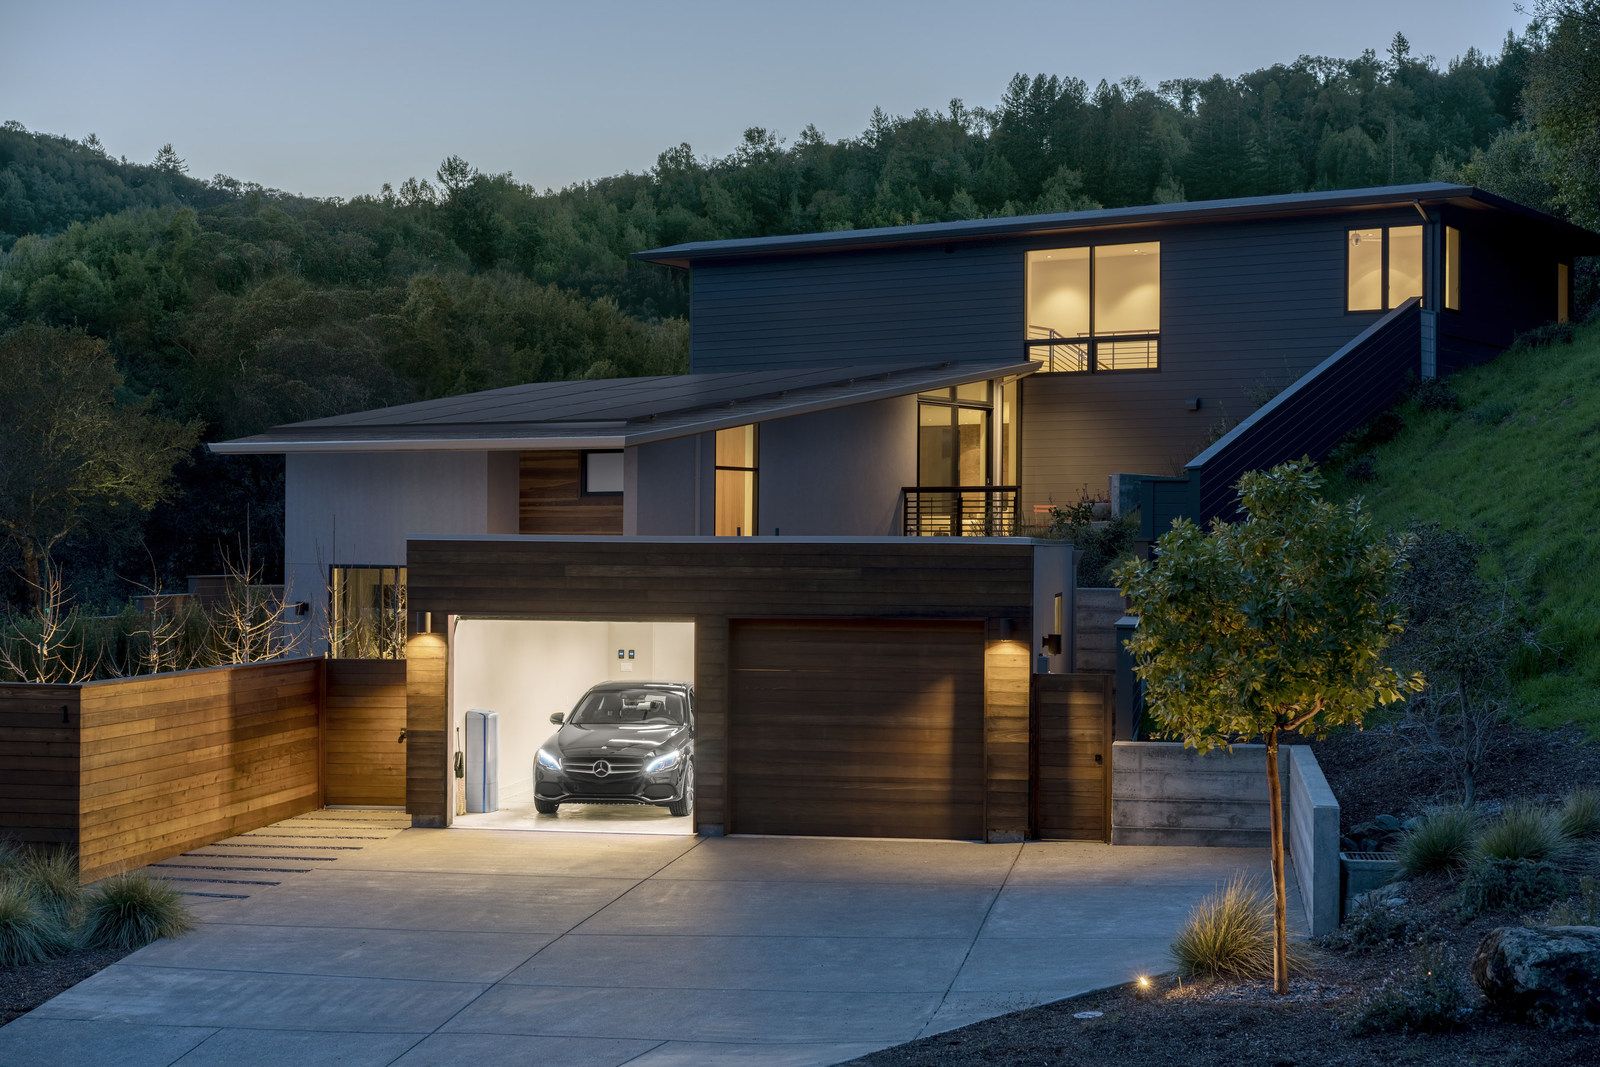 The offering will be available in California first. Image credit: Mercedes-Benz/Vivint Solar